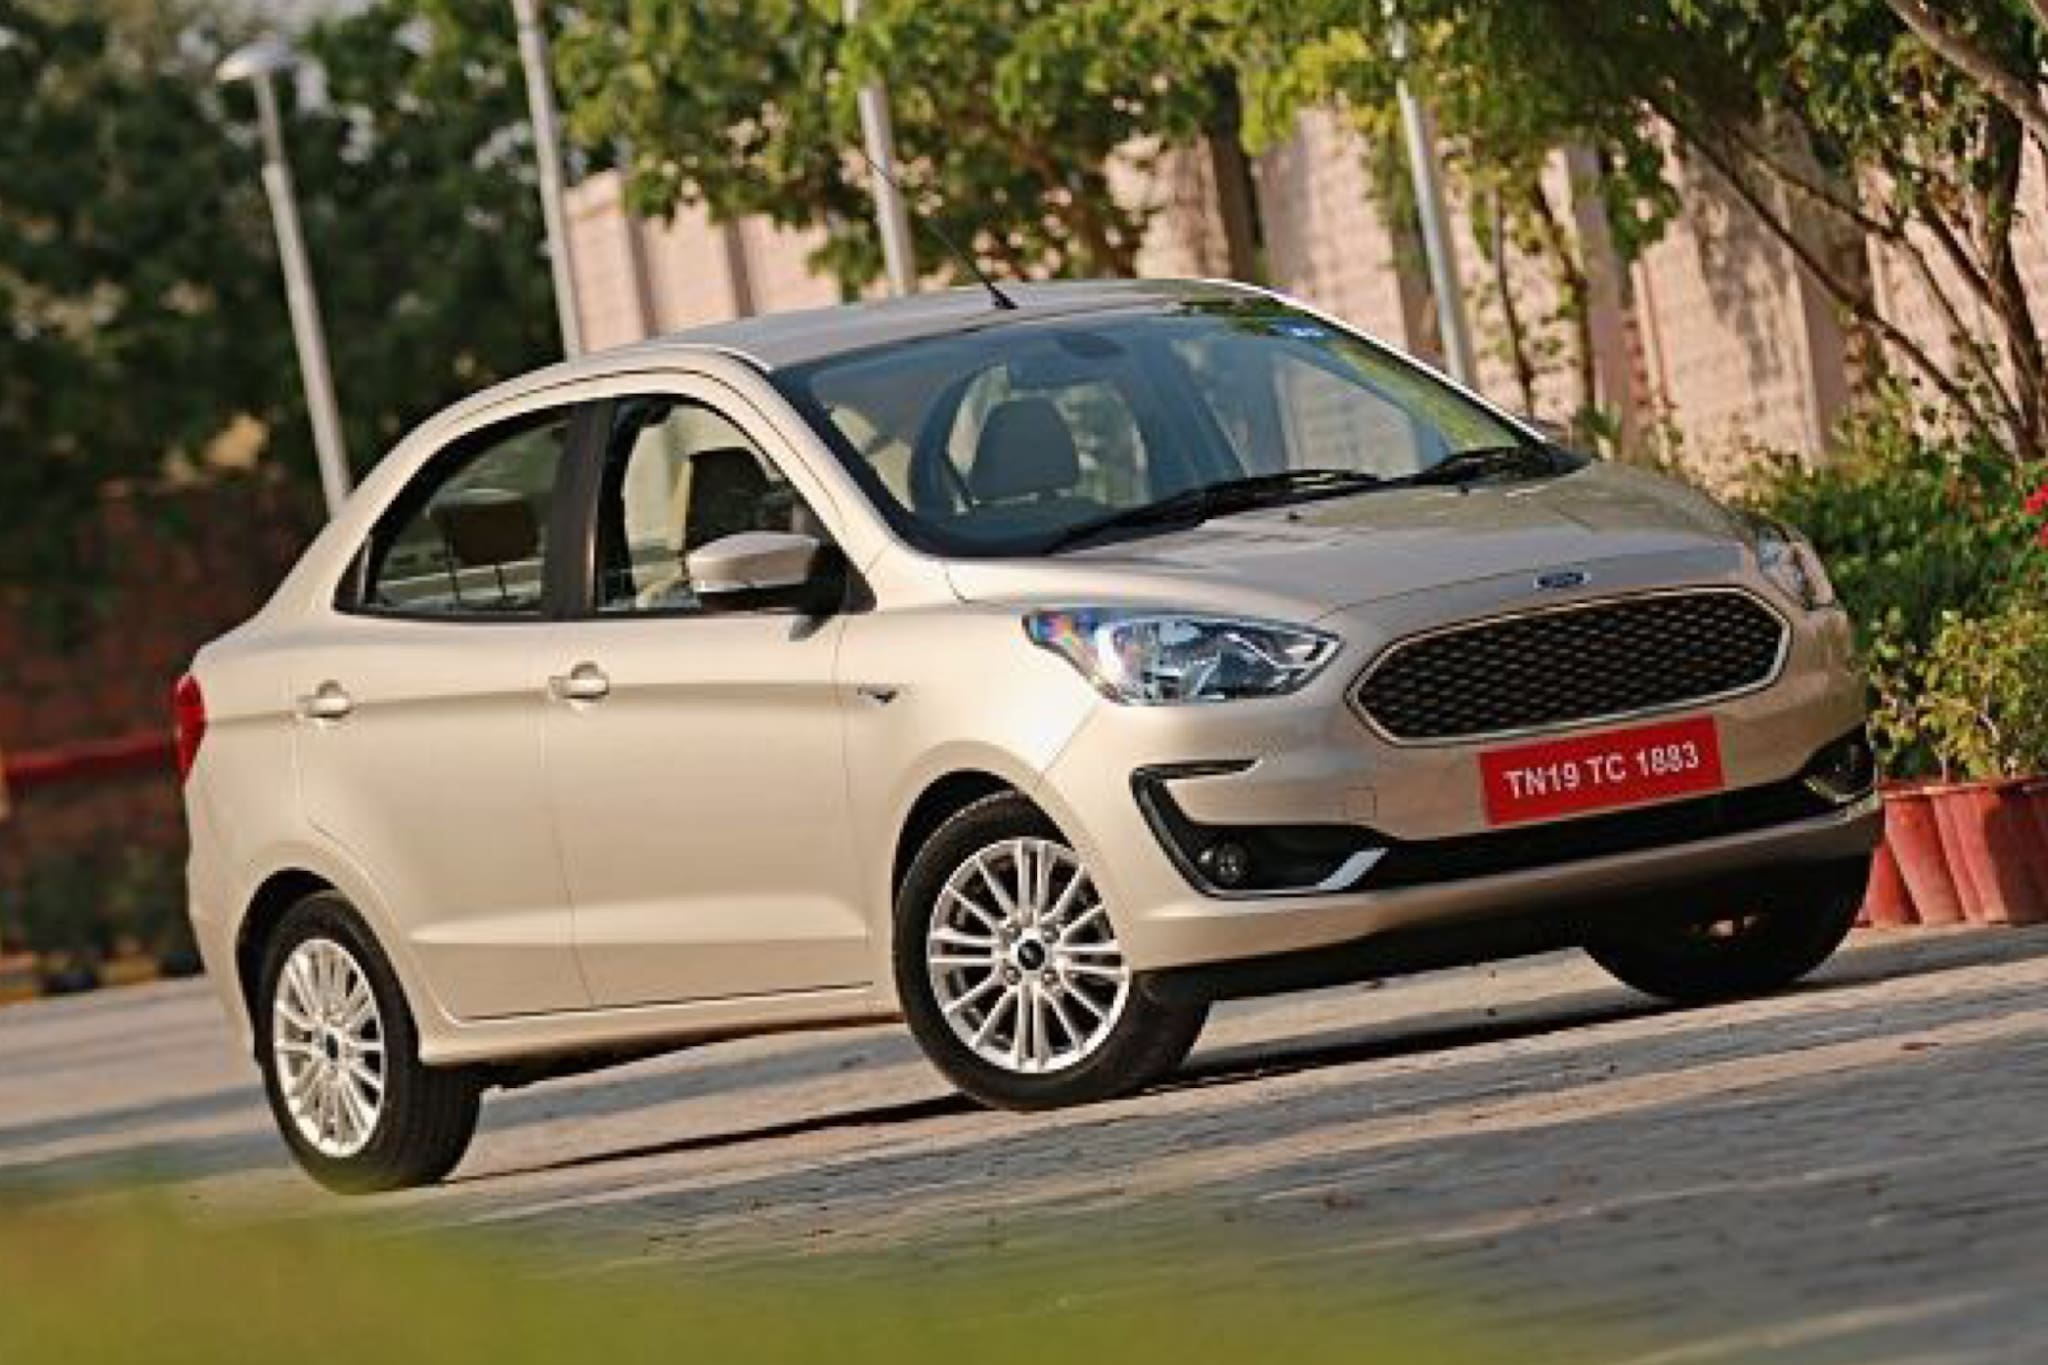 2018 Ford Aspire Facelift: First Drive Review